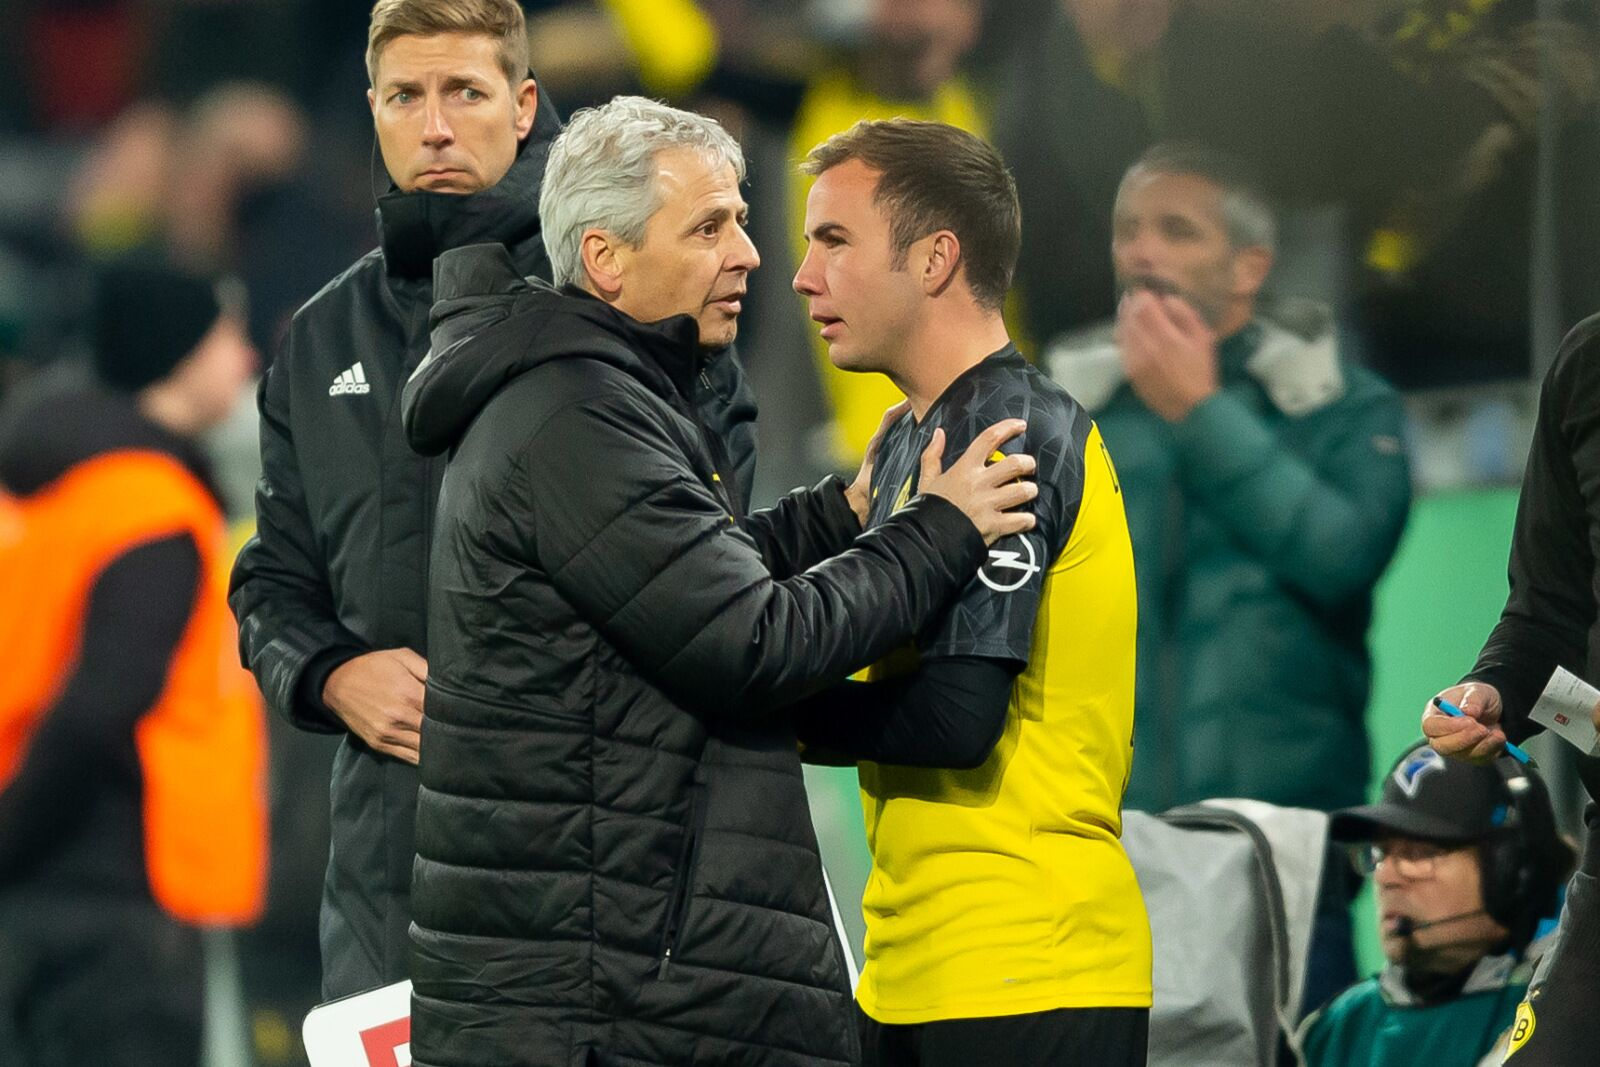 Rumour: Mario Götze will leave Borussia Dortmund if Lucien Favre stays as head coach